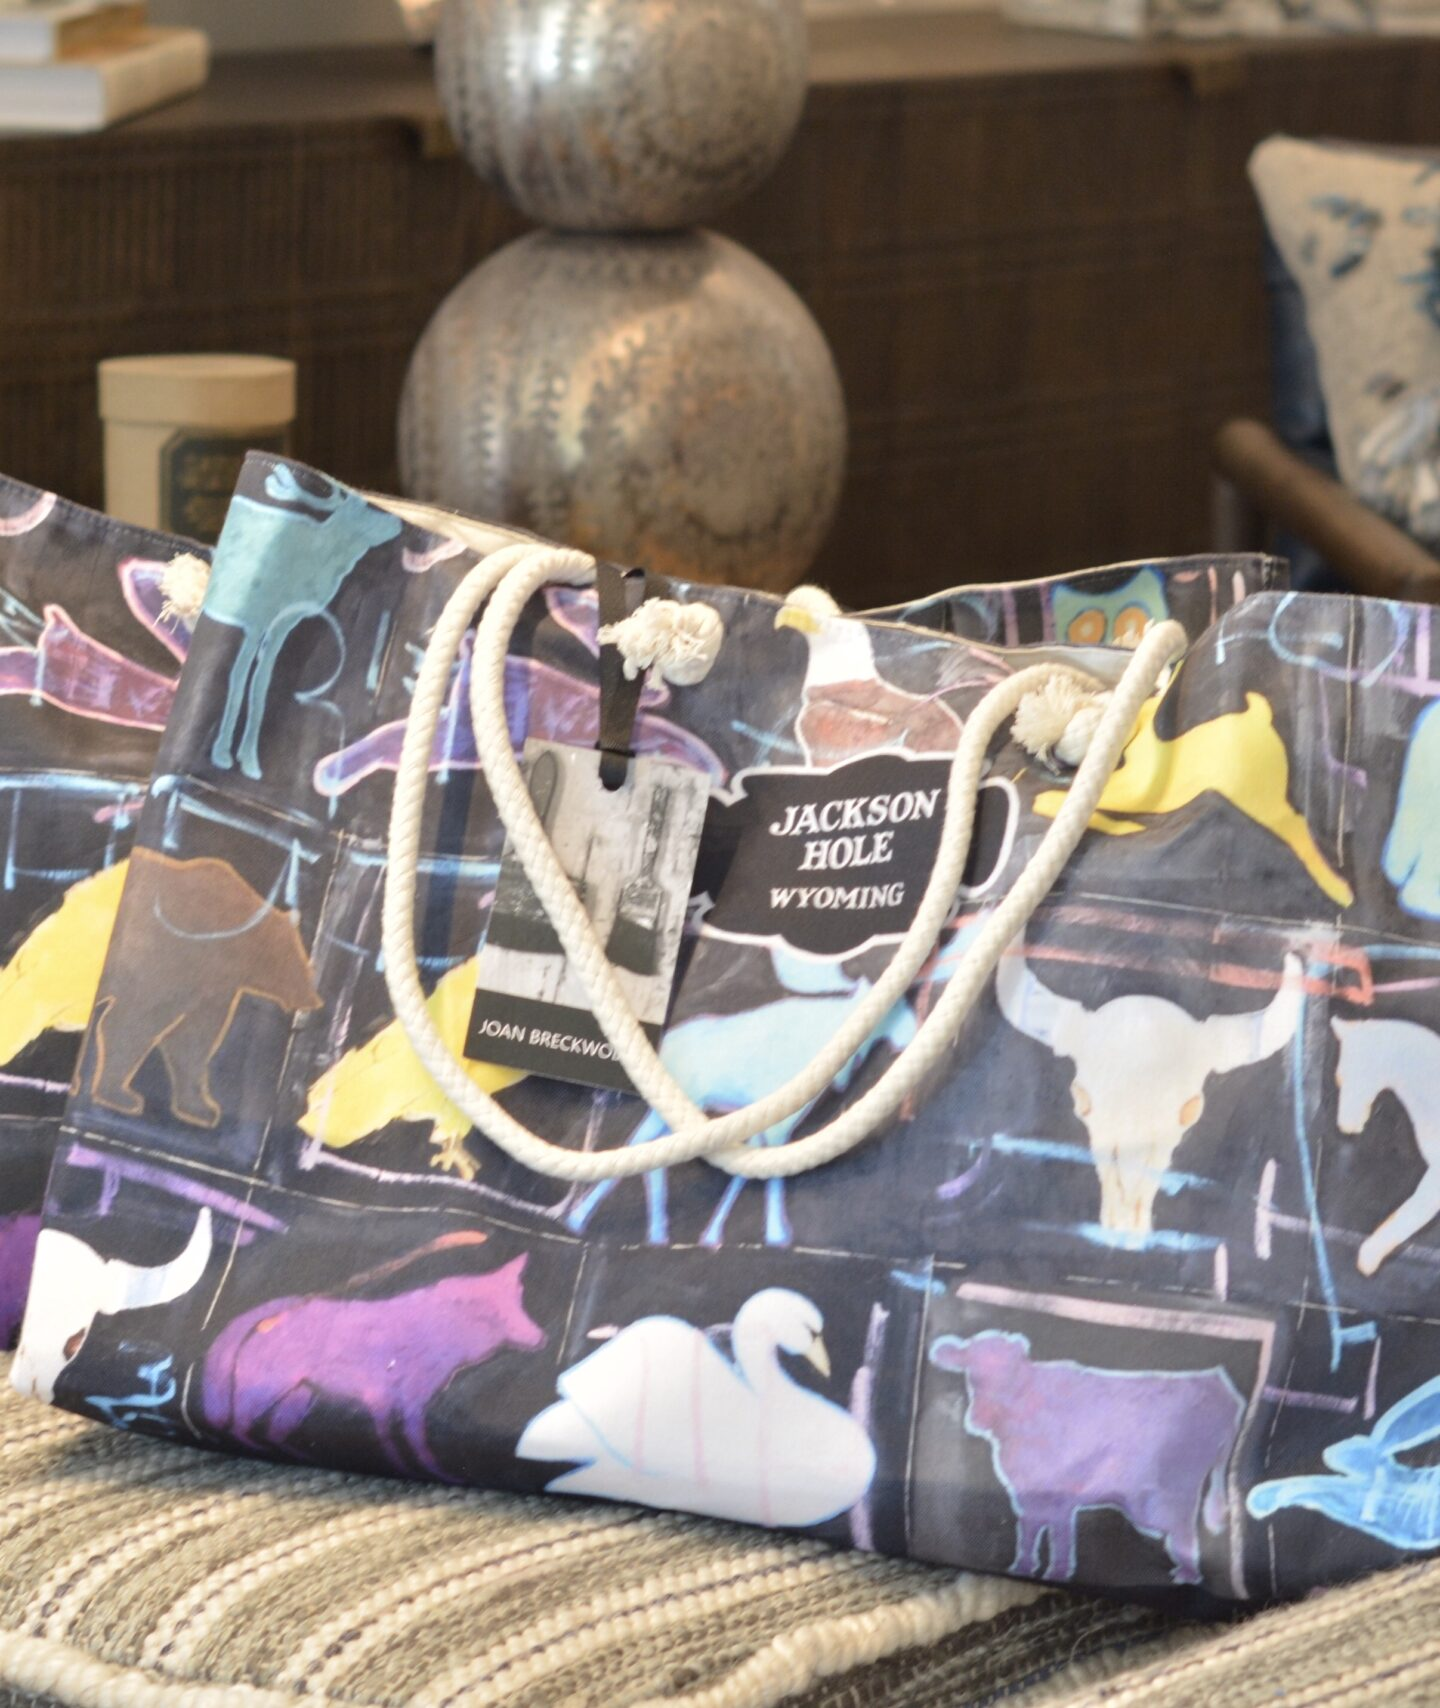 My Jackson Hole tote bag in a store display!